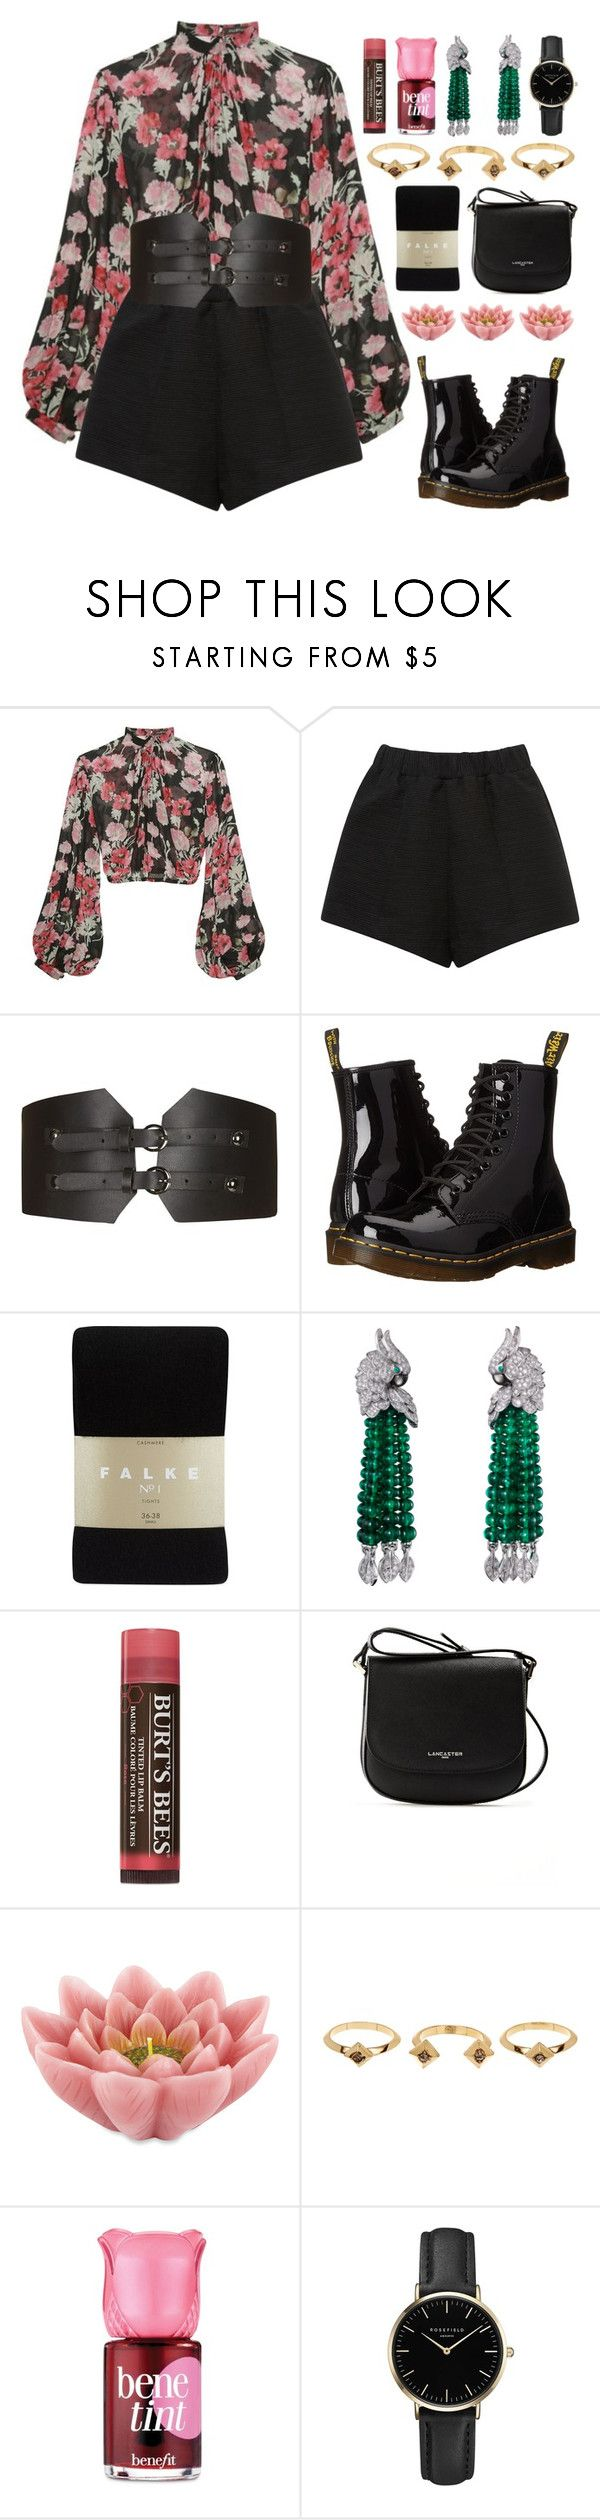 """""""My love is on fire~ Now burn baby burn~"""" by vip-beauty ❤ liked on Polyvore featuring Jill Stuart, E L L E R Y, Topshop, Dr. Martens, Falke, Burt's Bees, Lancaster, Pink Lotus, House of Harlow 1960 and Benefit"""